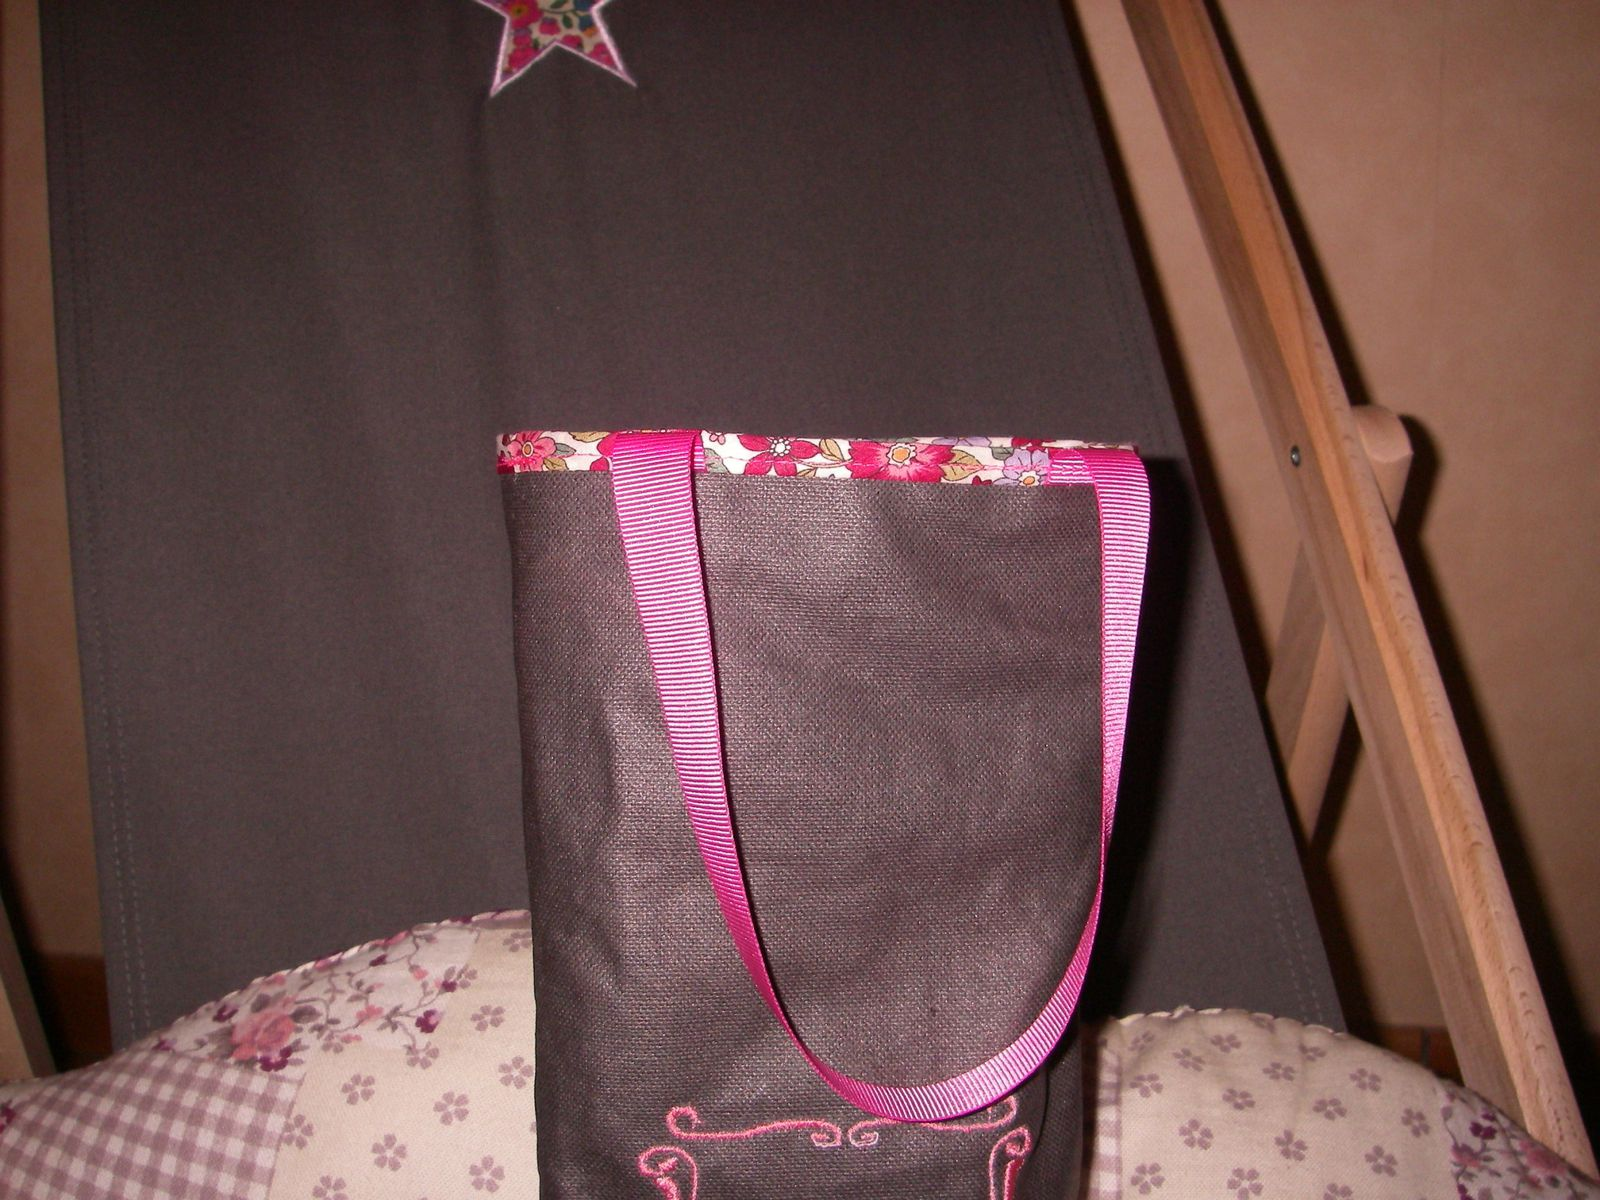 Sac a bouteilles &quot&#x3B;girly&quot&#x3B;